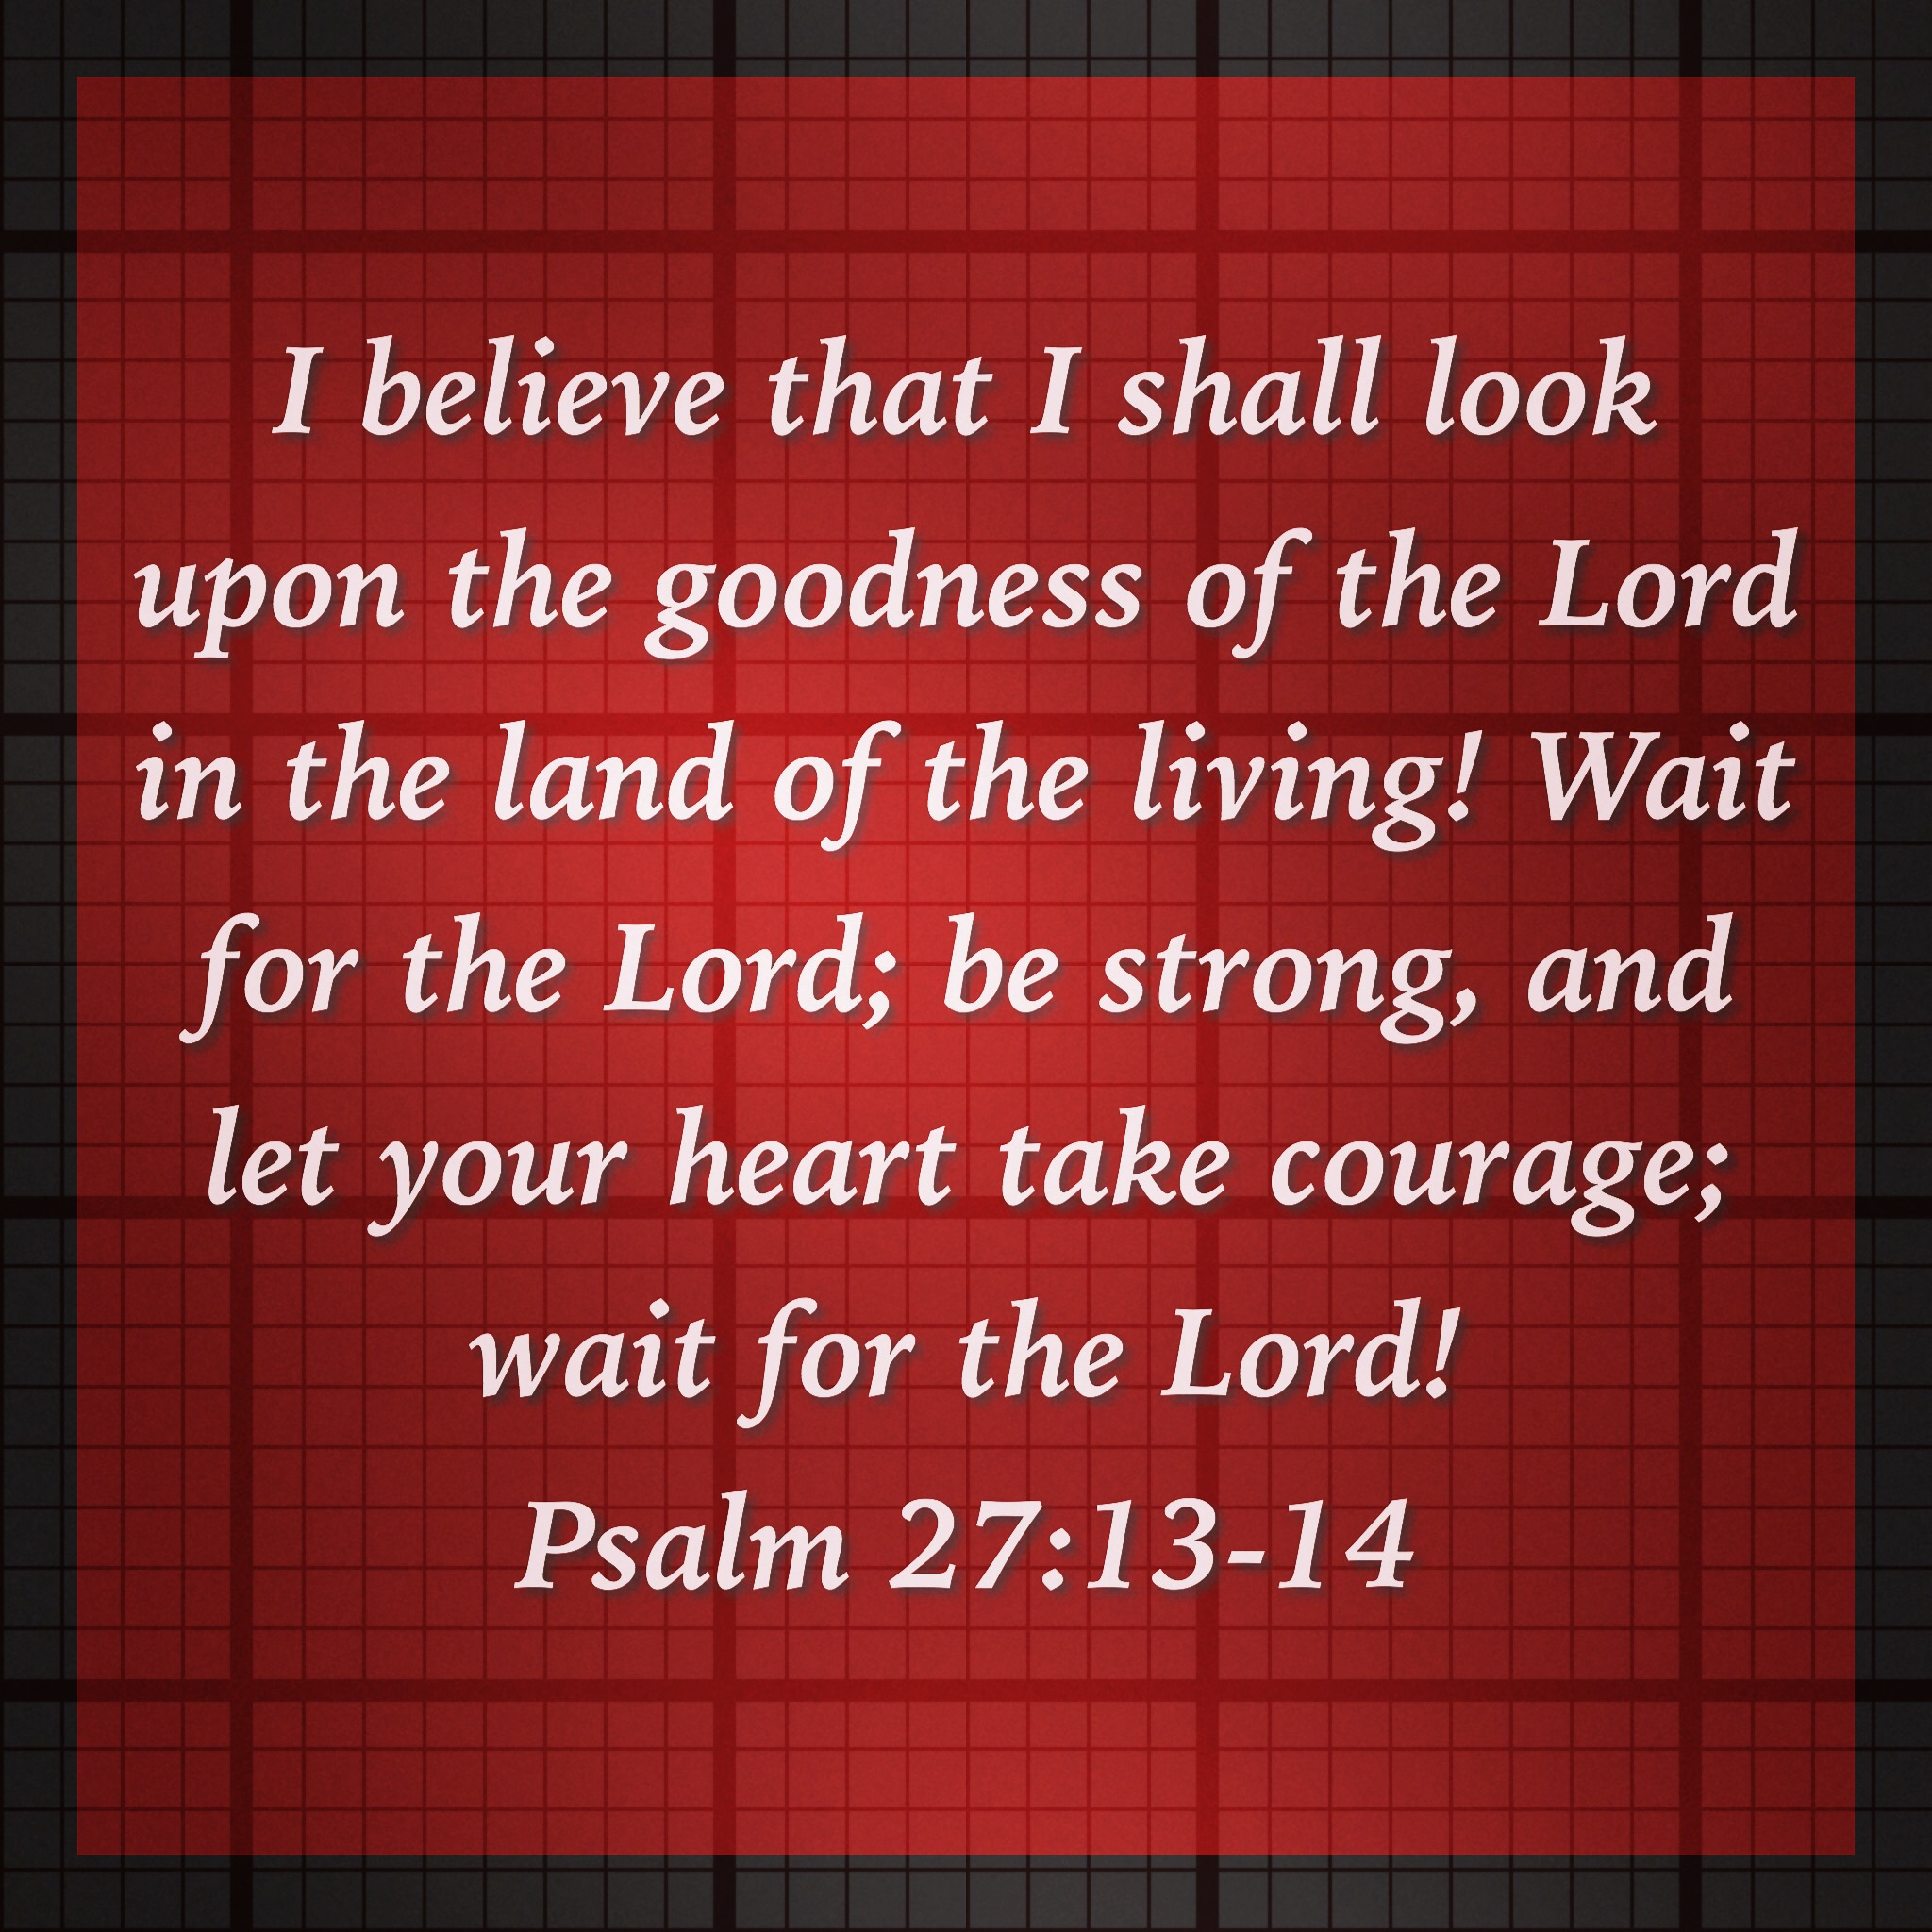 for the lord be strong and let your heart take courage wait for the ...